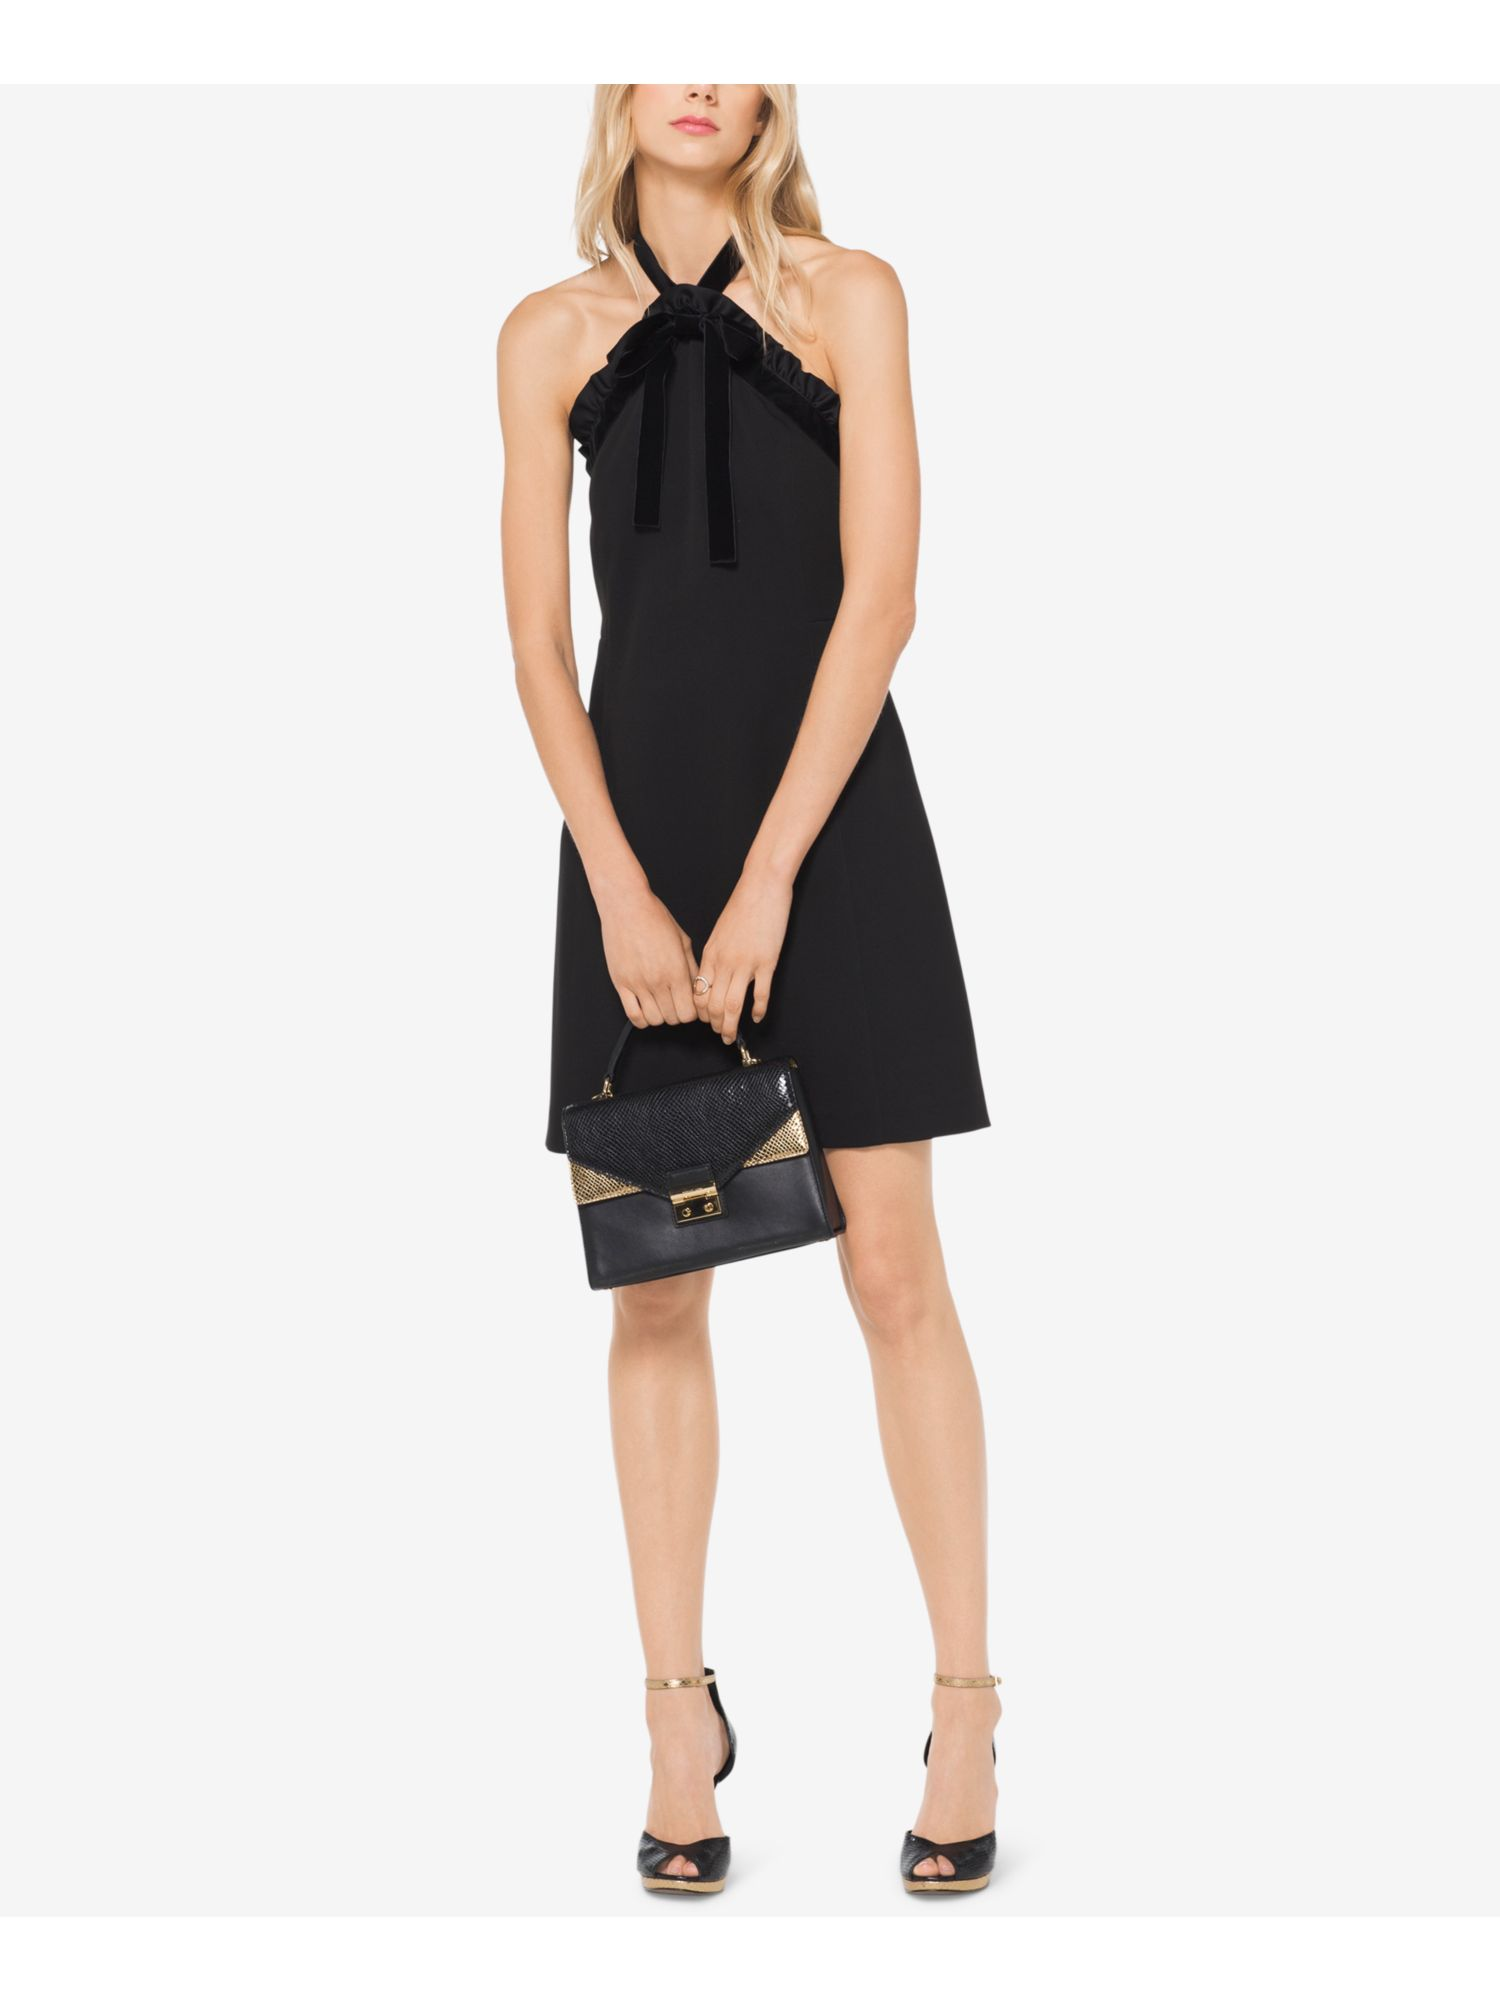 Michael Kors Collection Studded Double-Knit Mermaid Midi